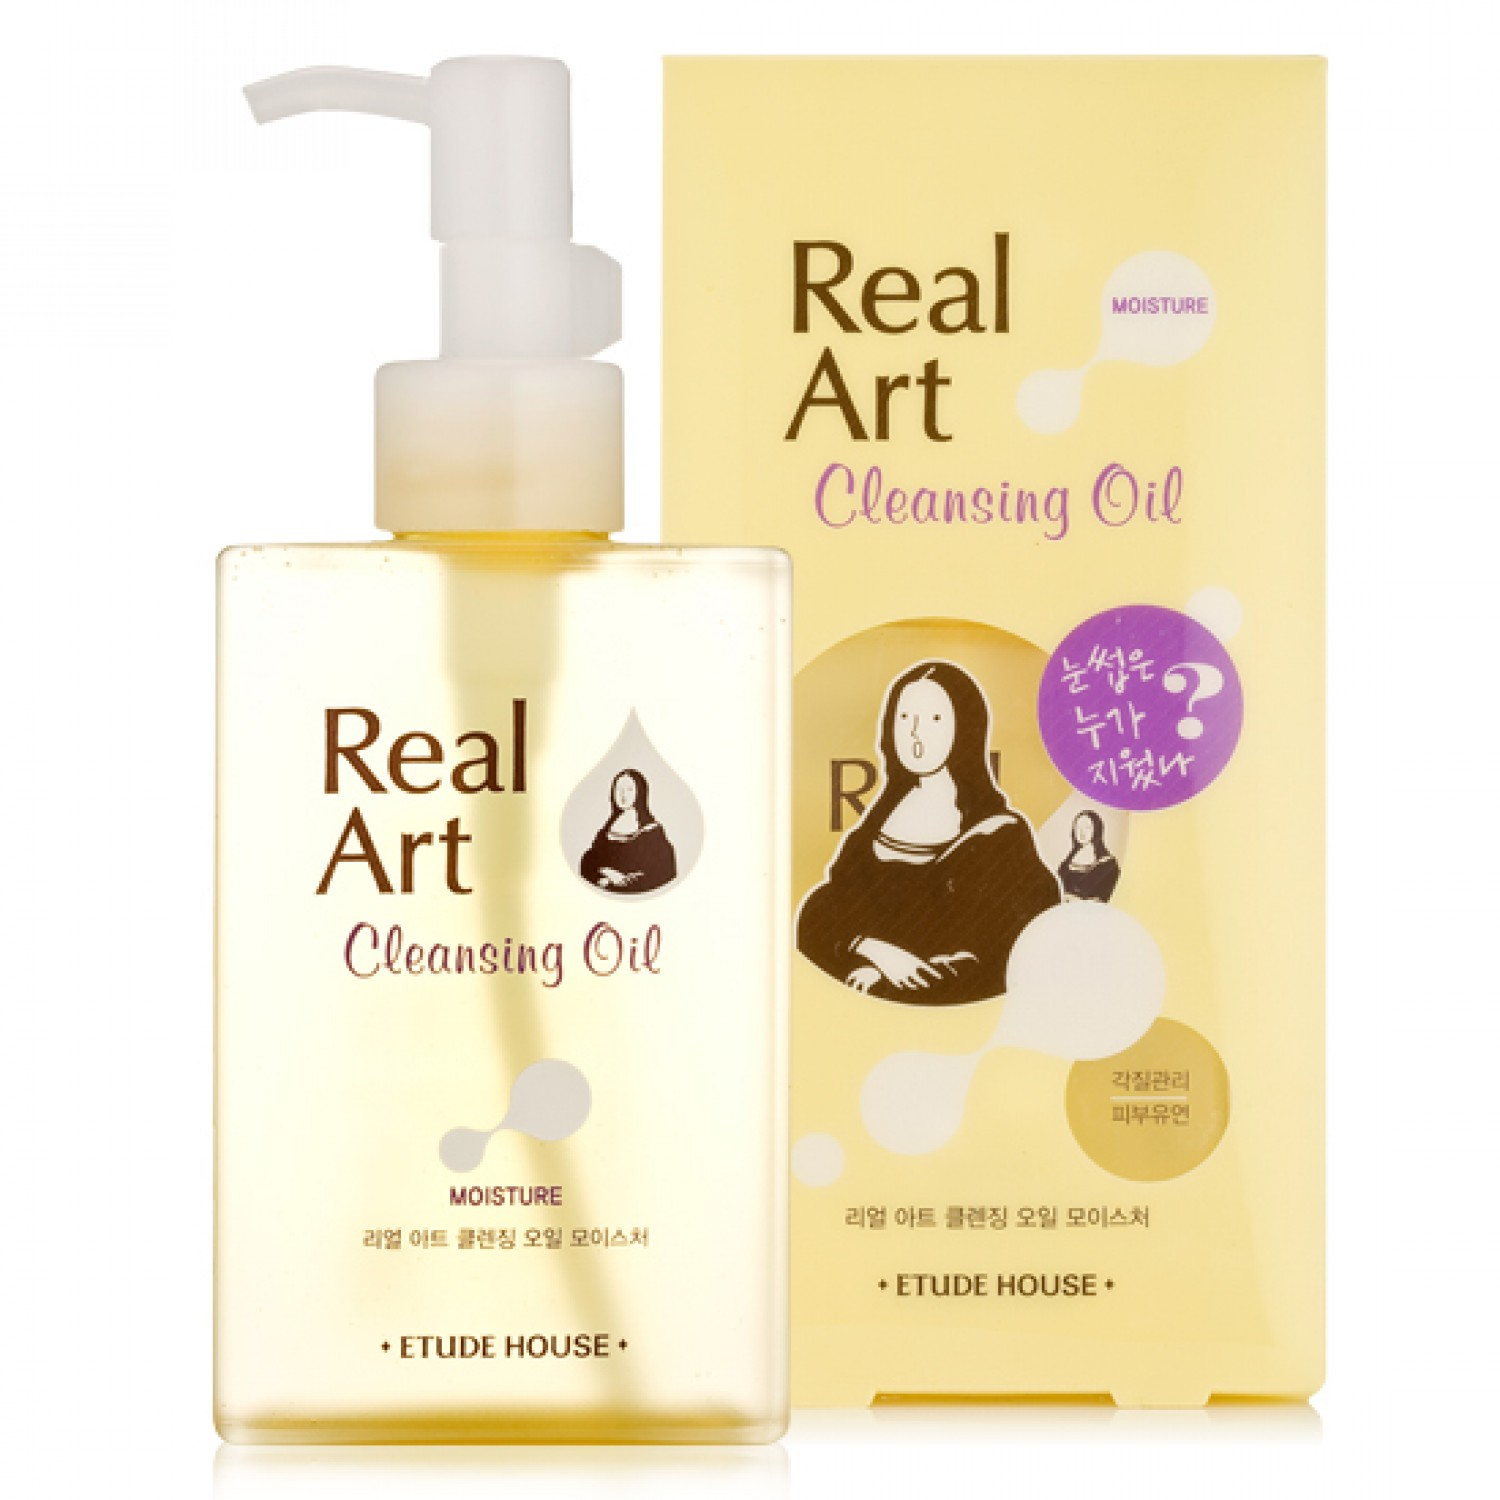 Etude House Real Art 卸粧油 185ml